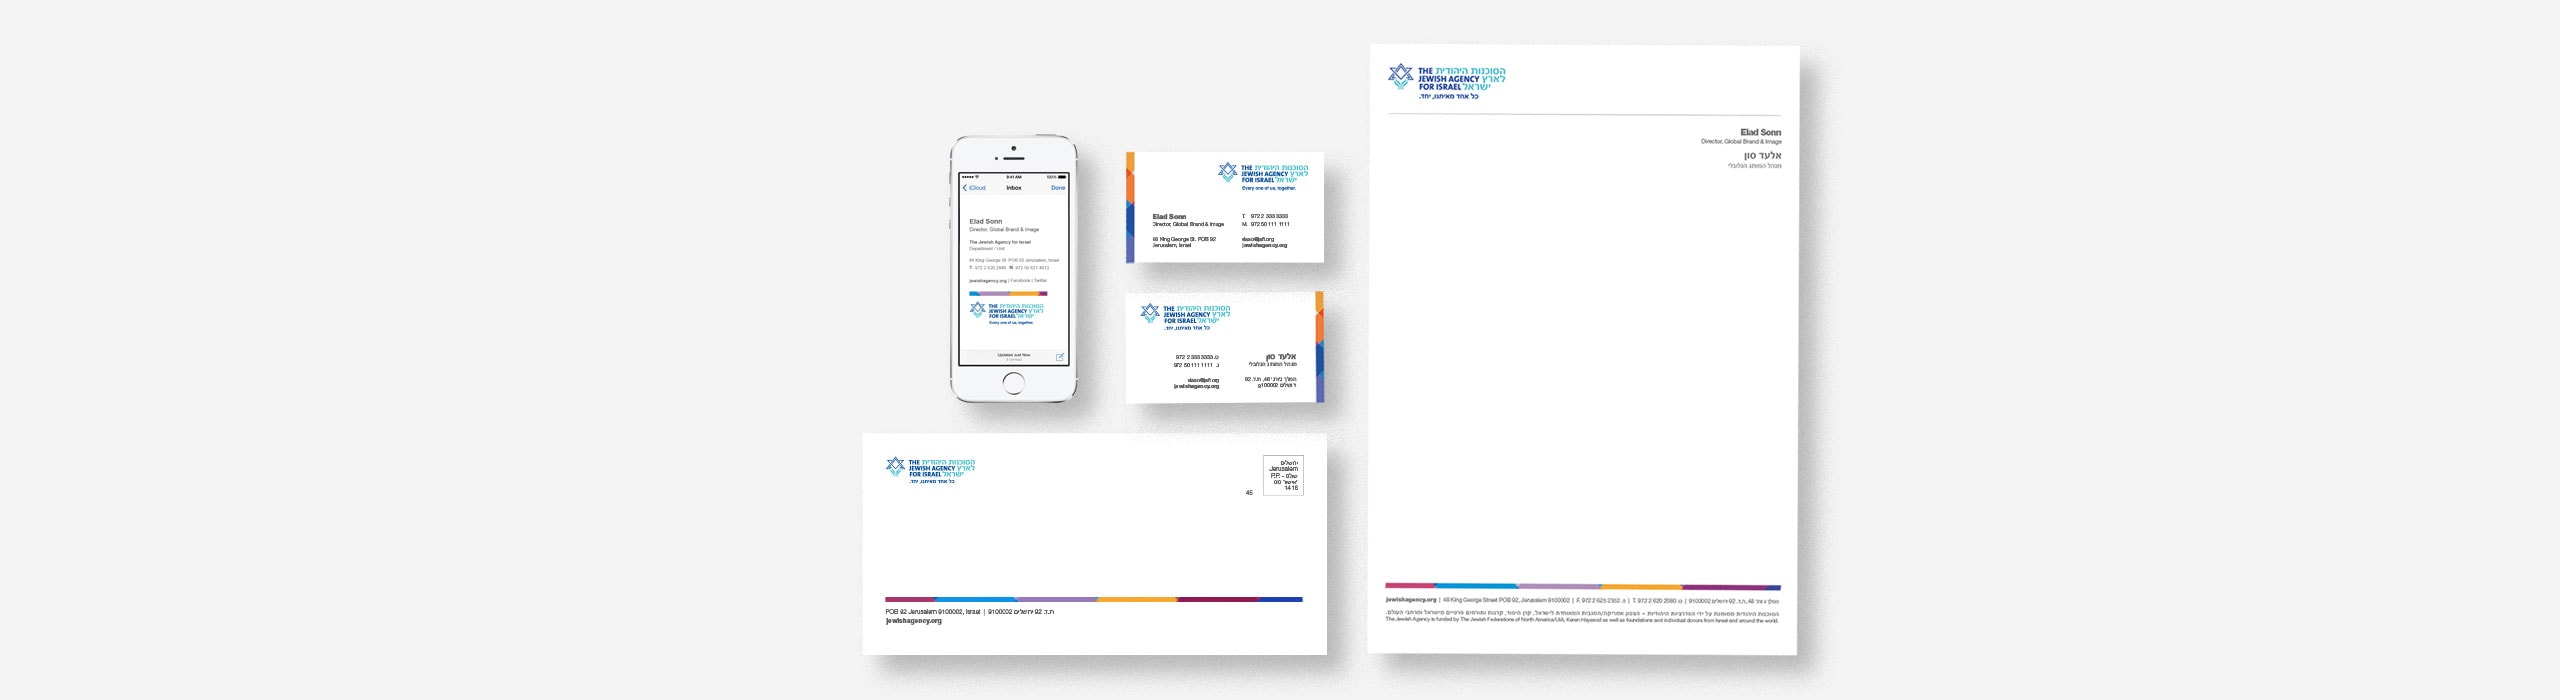 The Jewish Agency for Israel - 4 - Natie Branding Agency